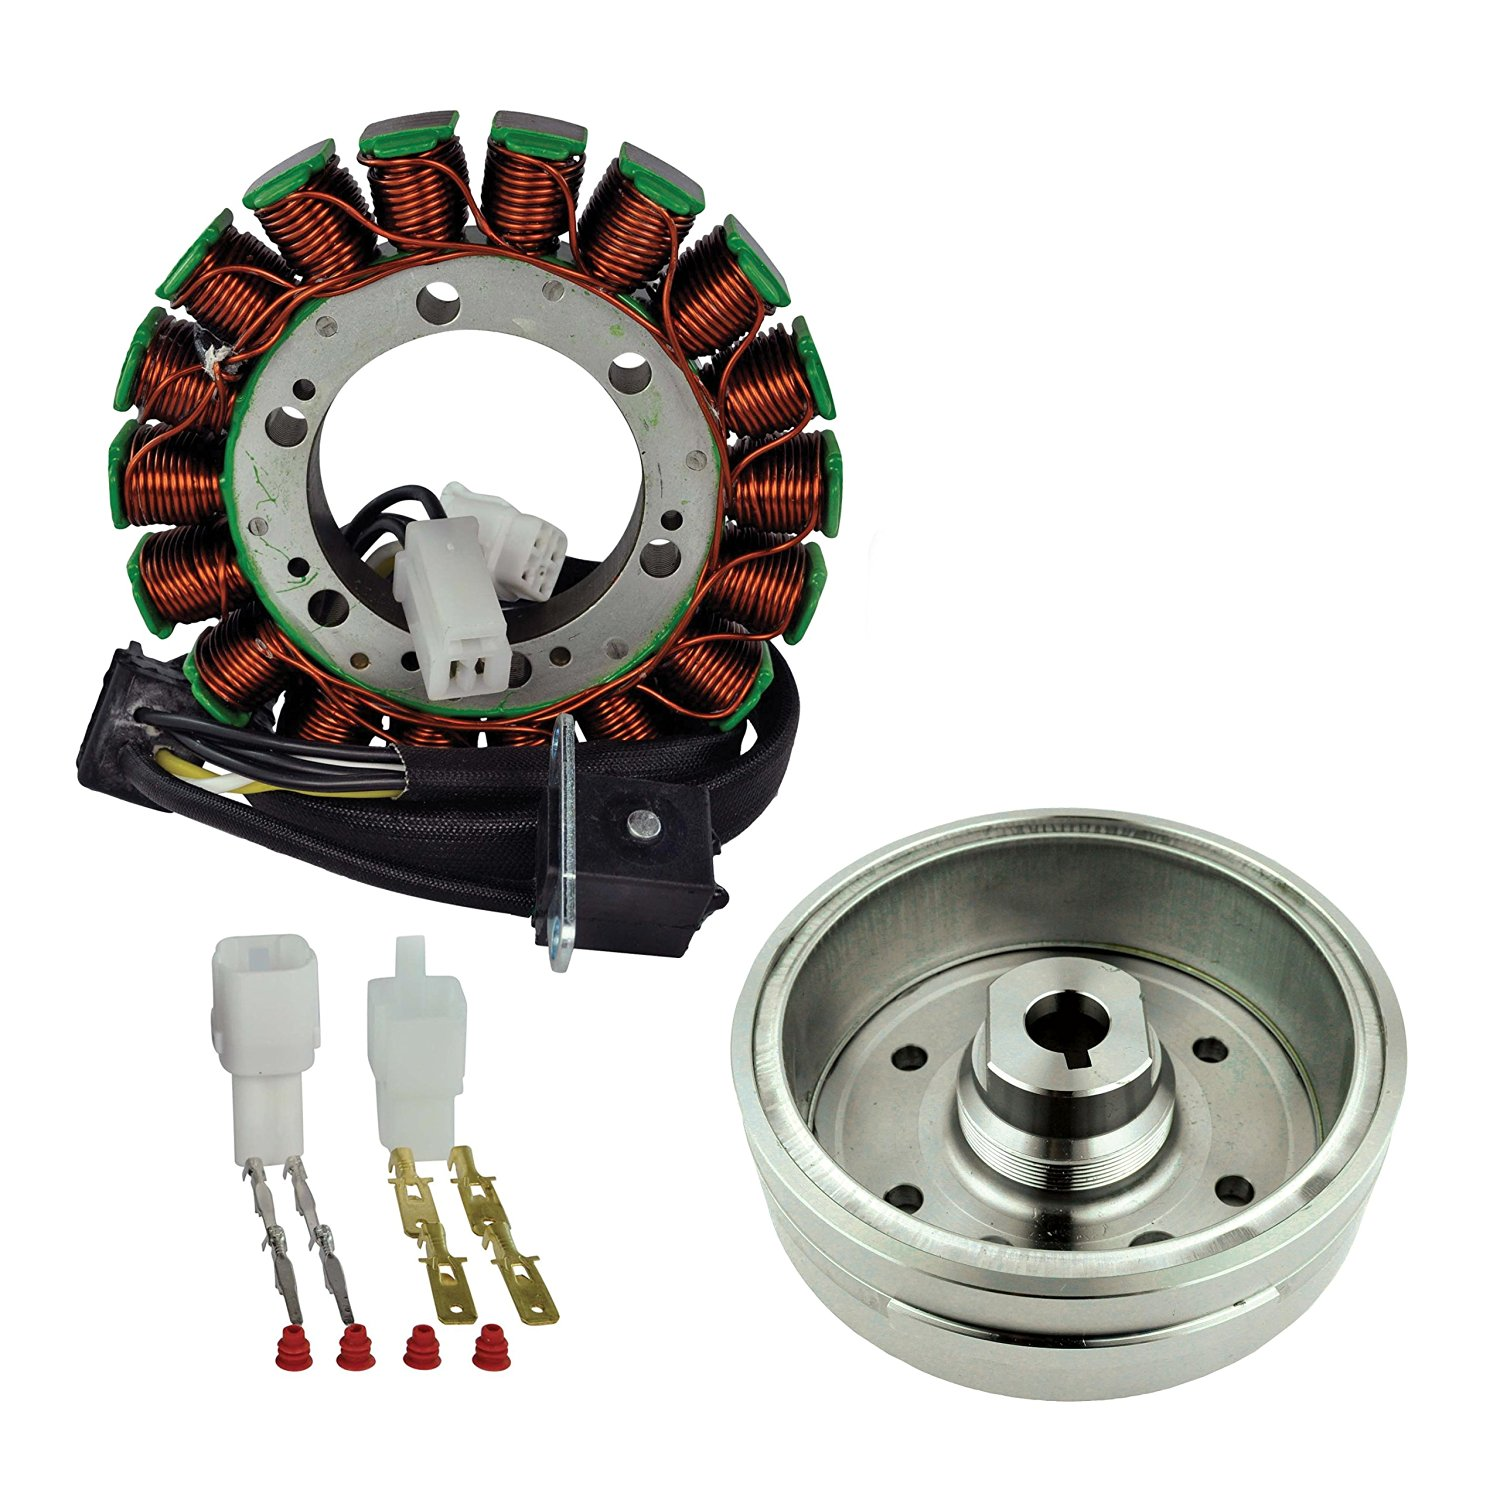 Kit Stator + Improved Magneto Flywheel For Suzuki LTA 400 Eiger / LTF 400 Eiger Arctic Cat 375 400 2002 2003 2004 2005 2006 2007 2008